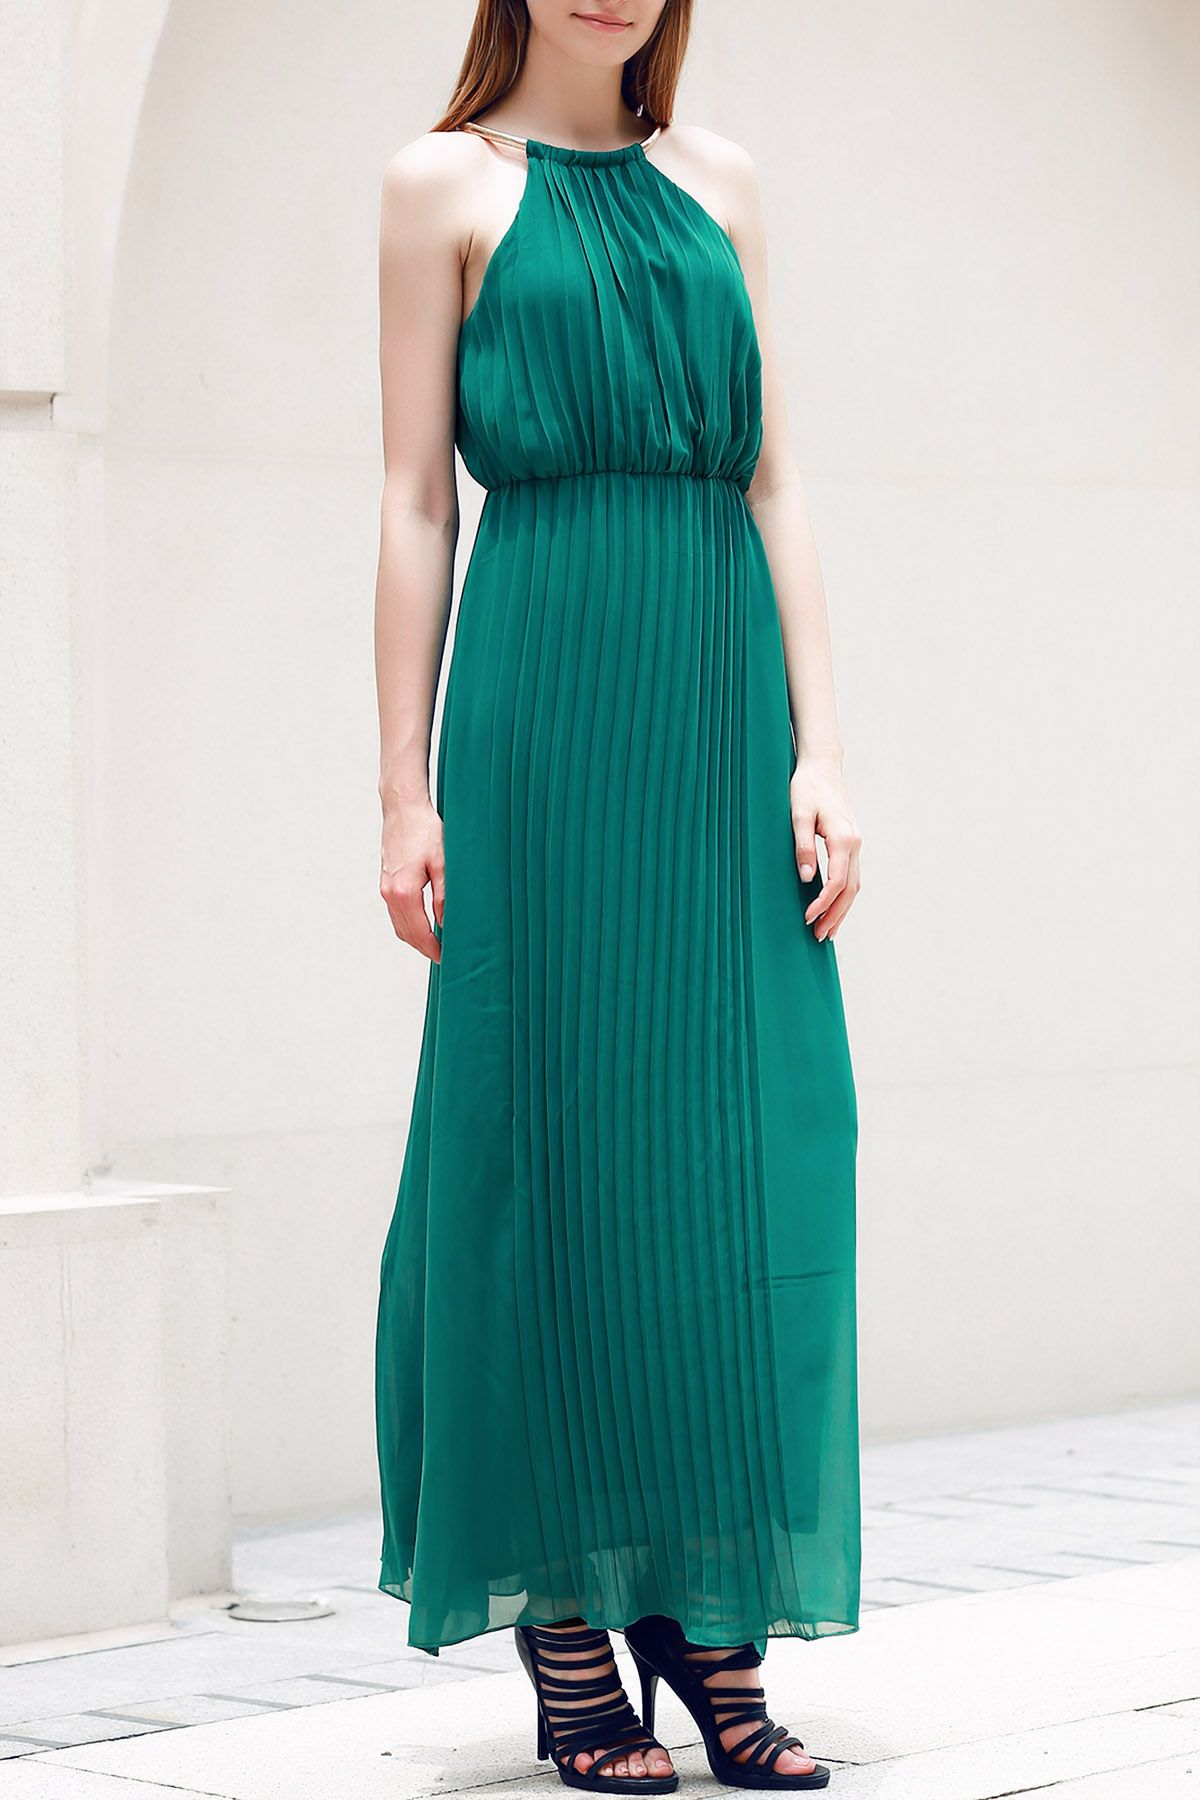 Fashionable sleeveless pleated solid color womenus dress green